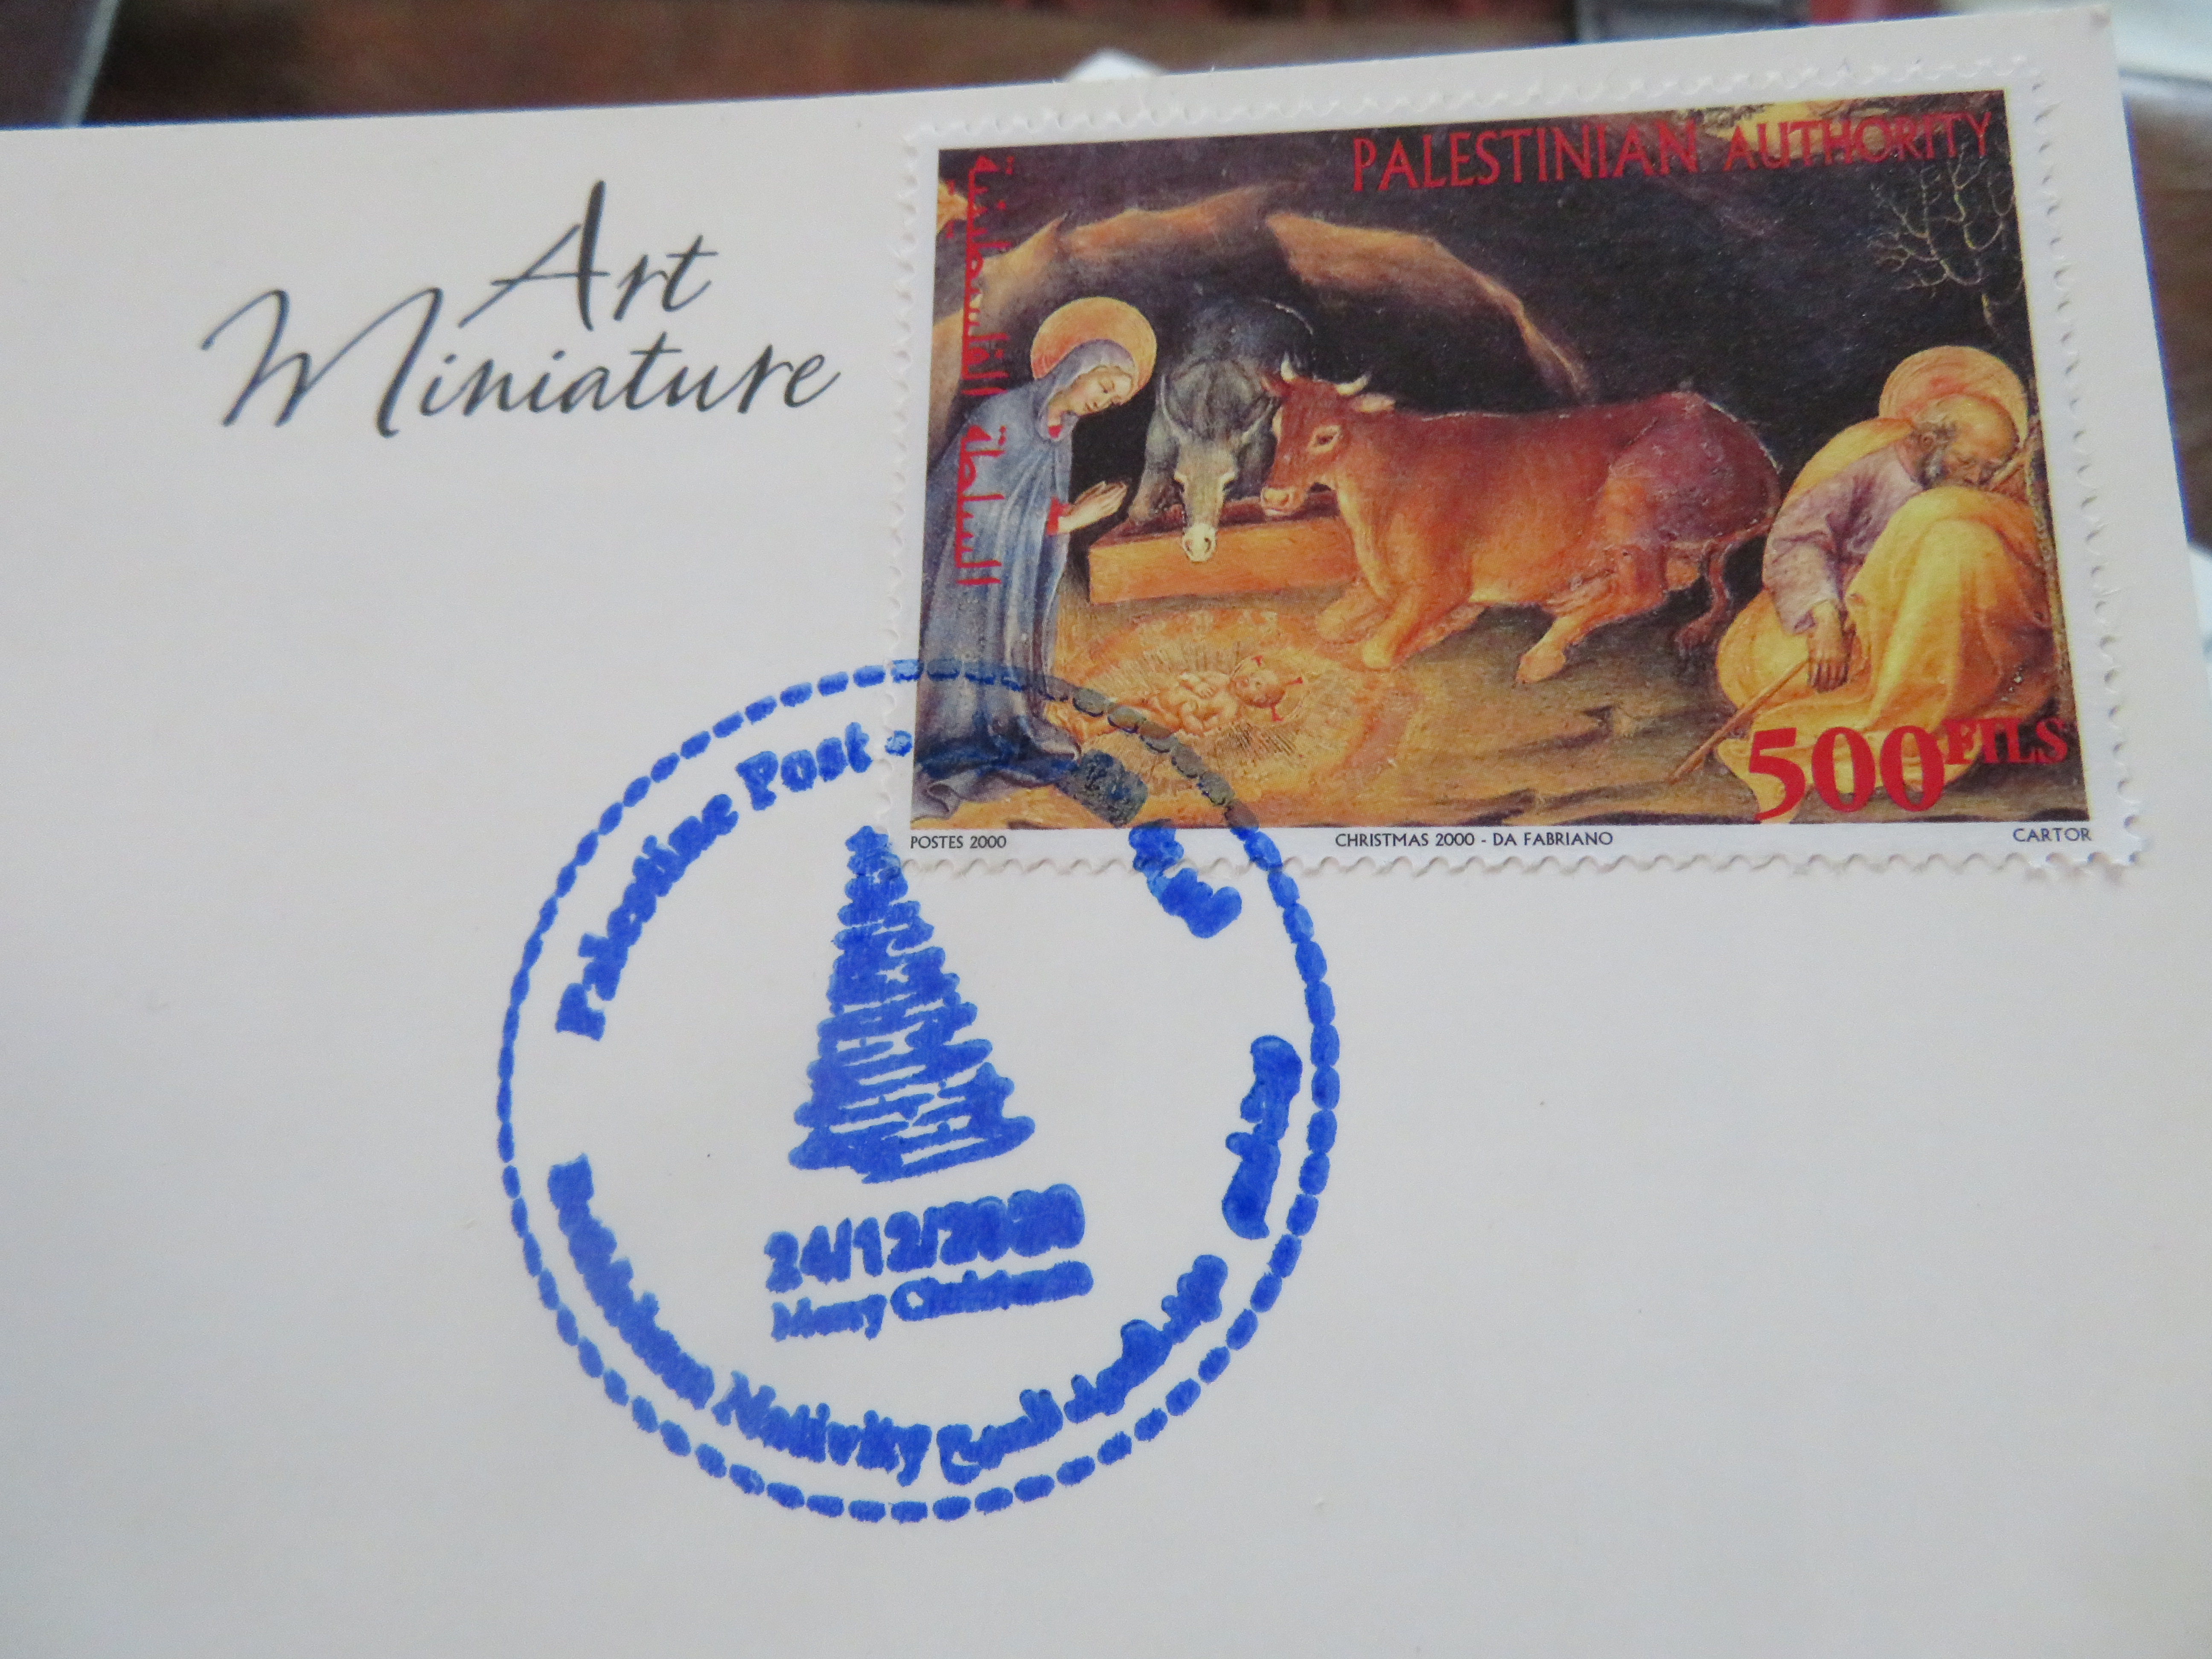 Pandemic Postmark: The special cancellation stamp for mail postmarked in Bethlehem on Christmas Eve, 2020